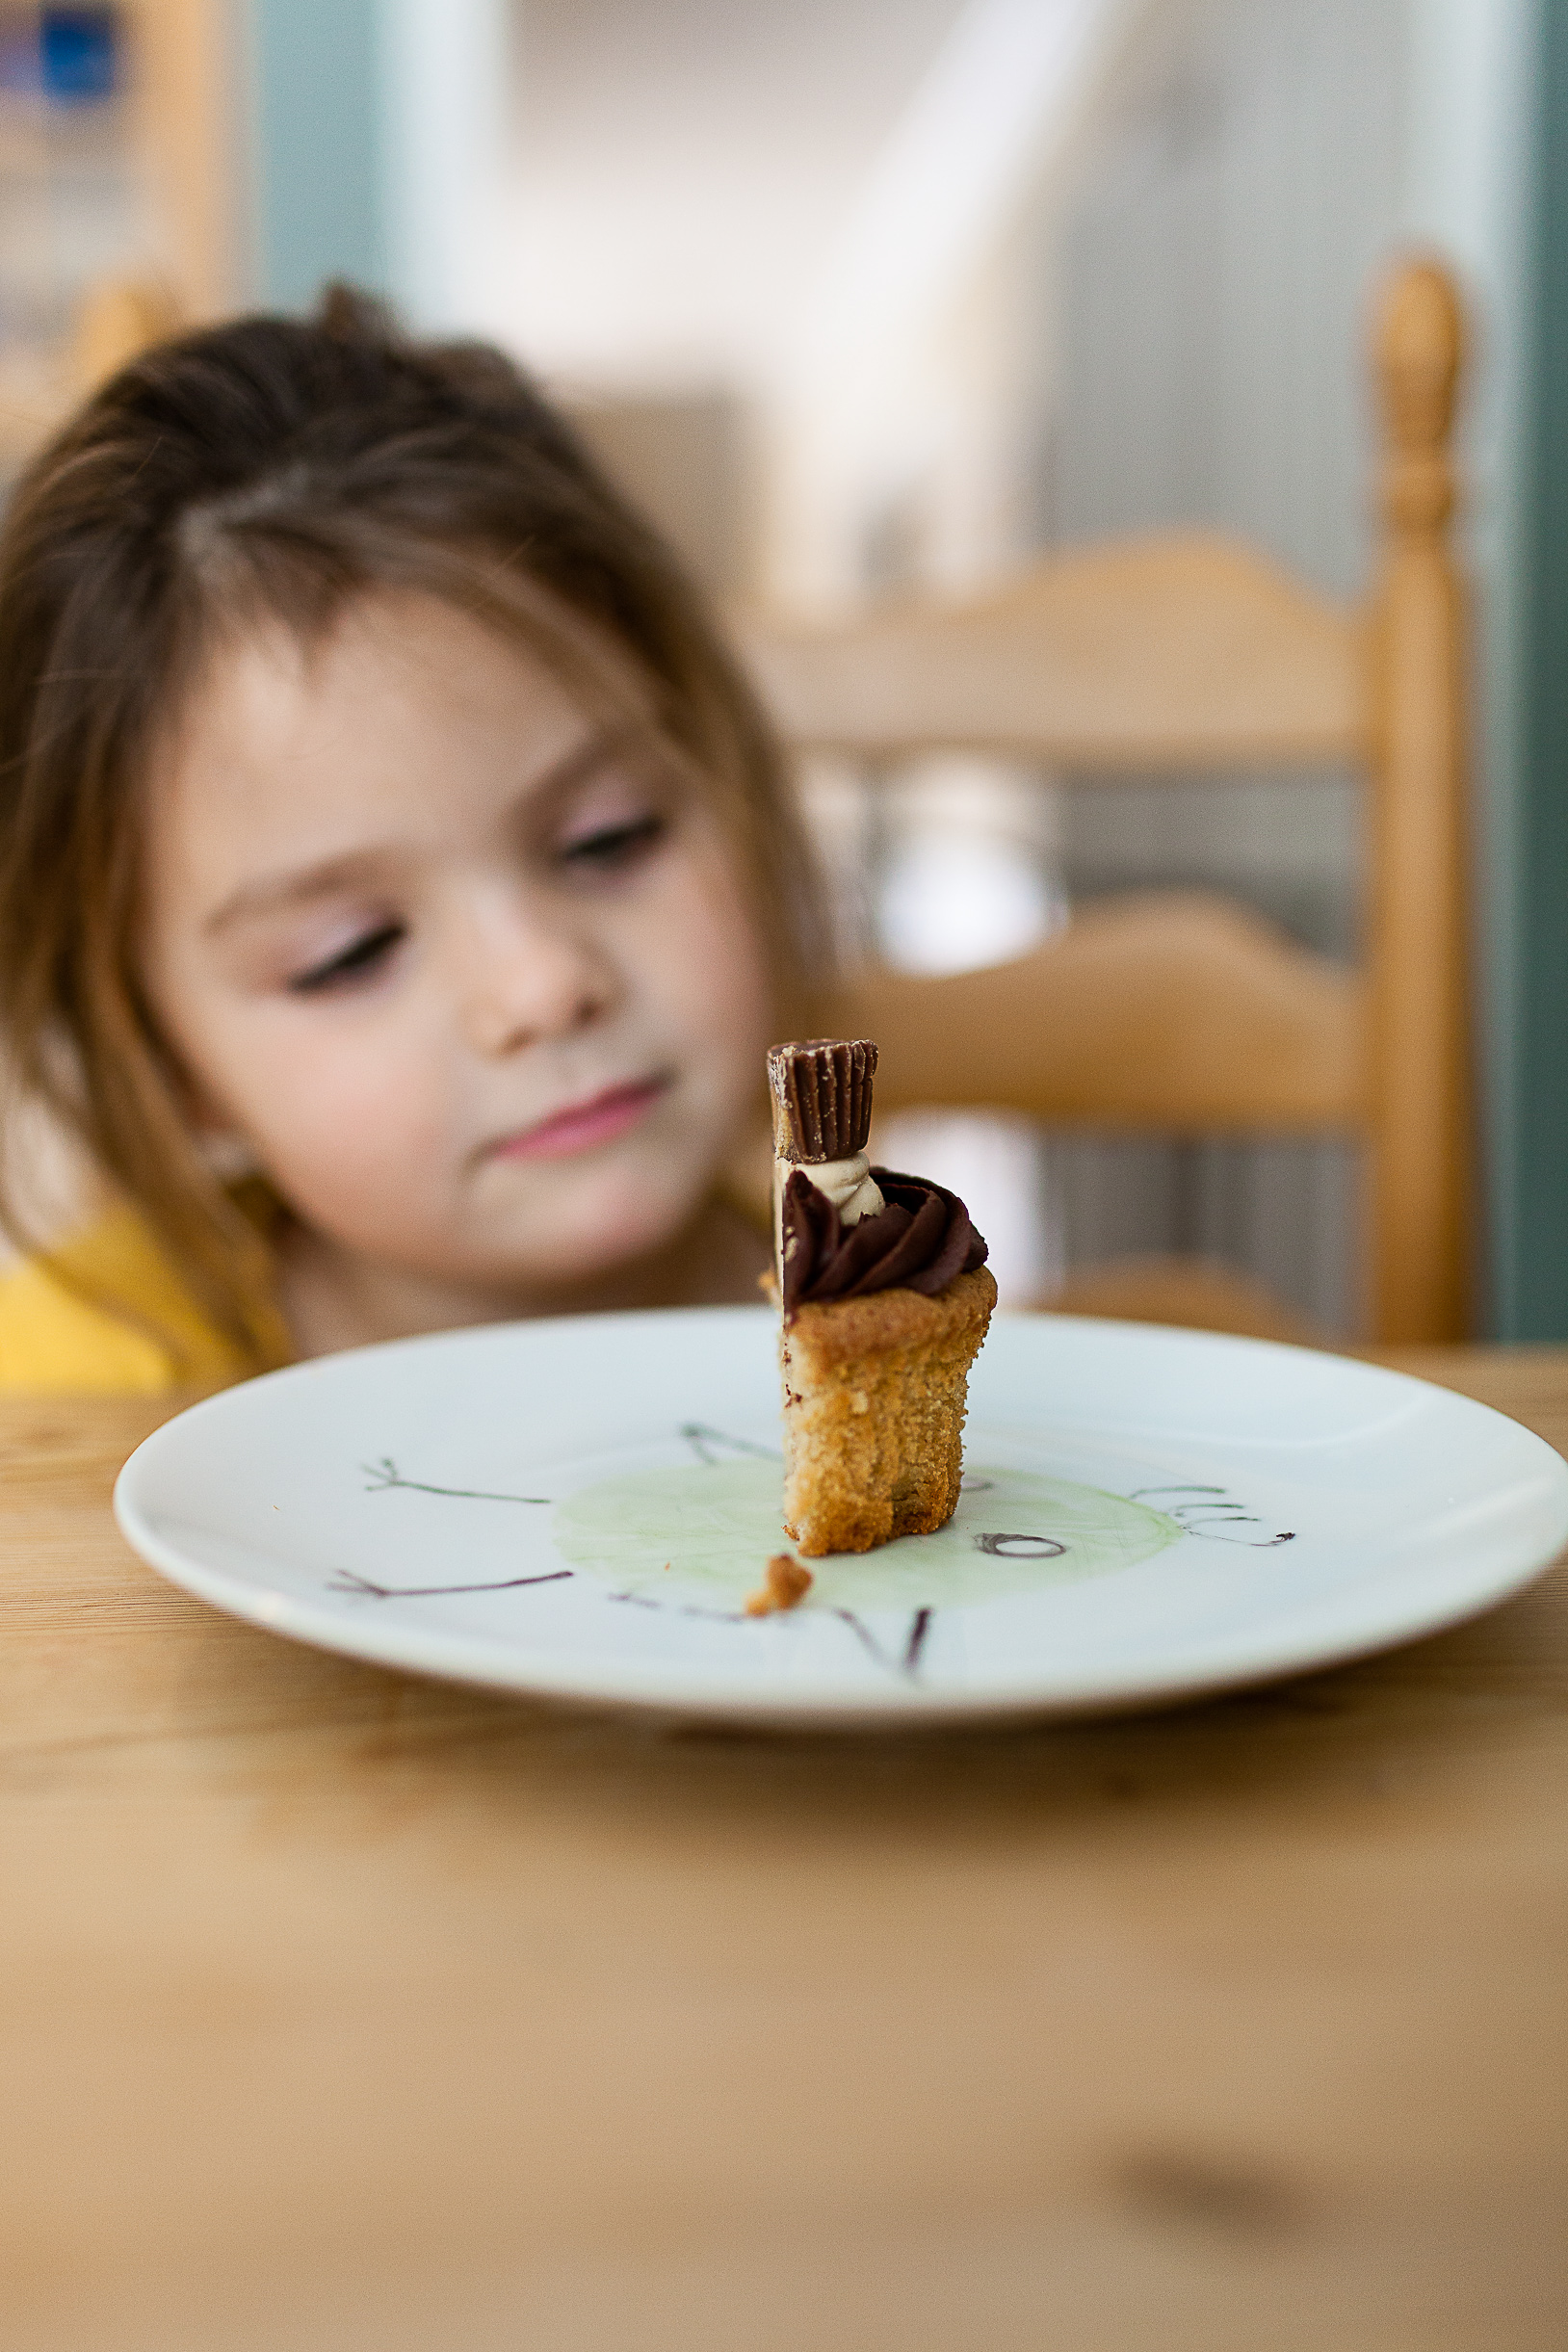 French kids can actually sit and stare at a half eaten cupcake and not go crazy. Le sigh.